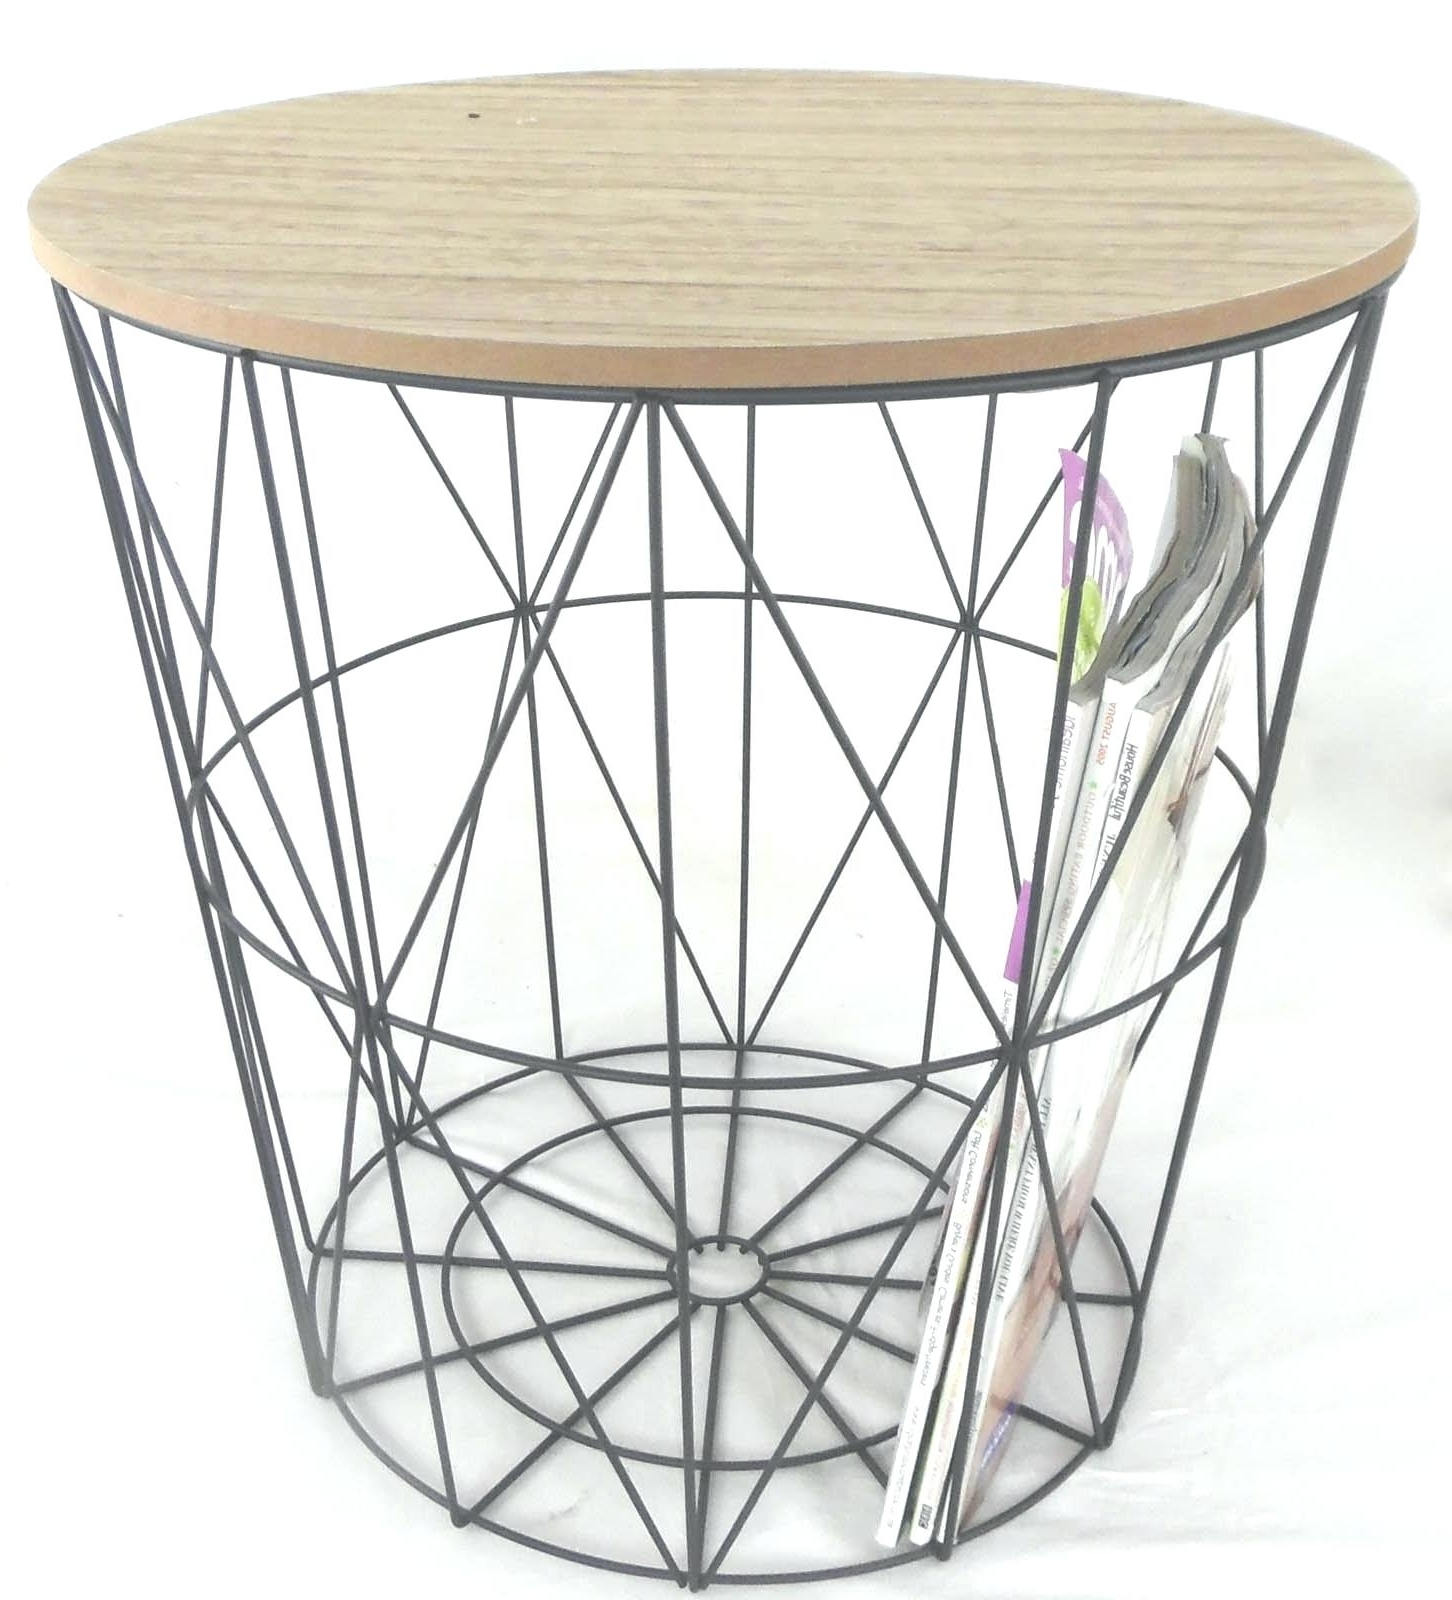 Black Wire Coffee Table Metal Side With Detachable Wooden Top Round Regarding Most Current Black Wire Coffee Tables (View 11 of 20)